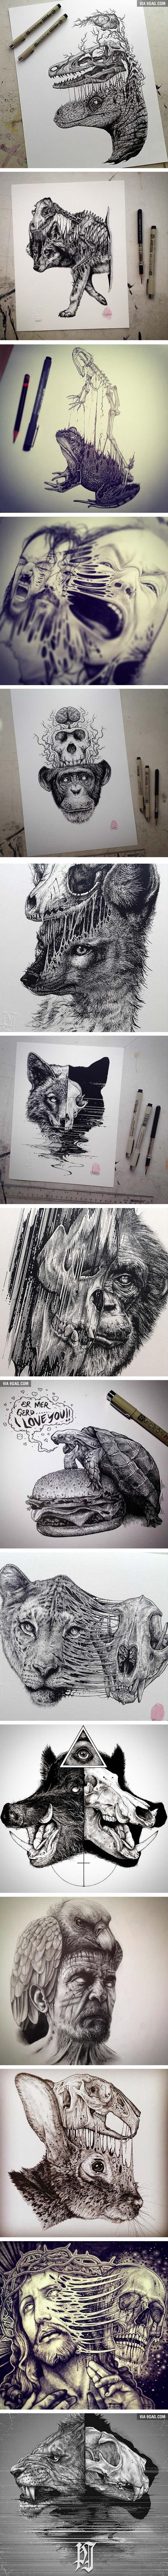 Animals Leave Their Skeletons Behind In These Stunning Dark Drawings (By Paul Jackson)                                                                                                                                                      More